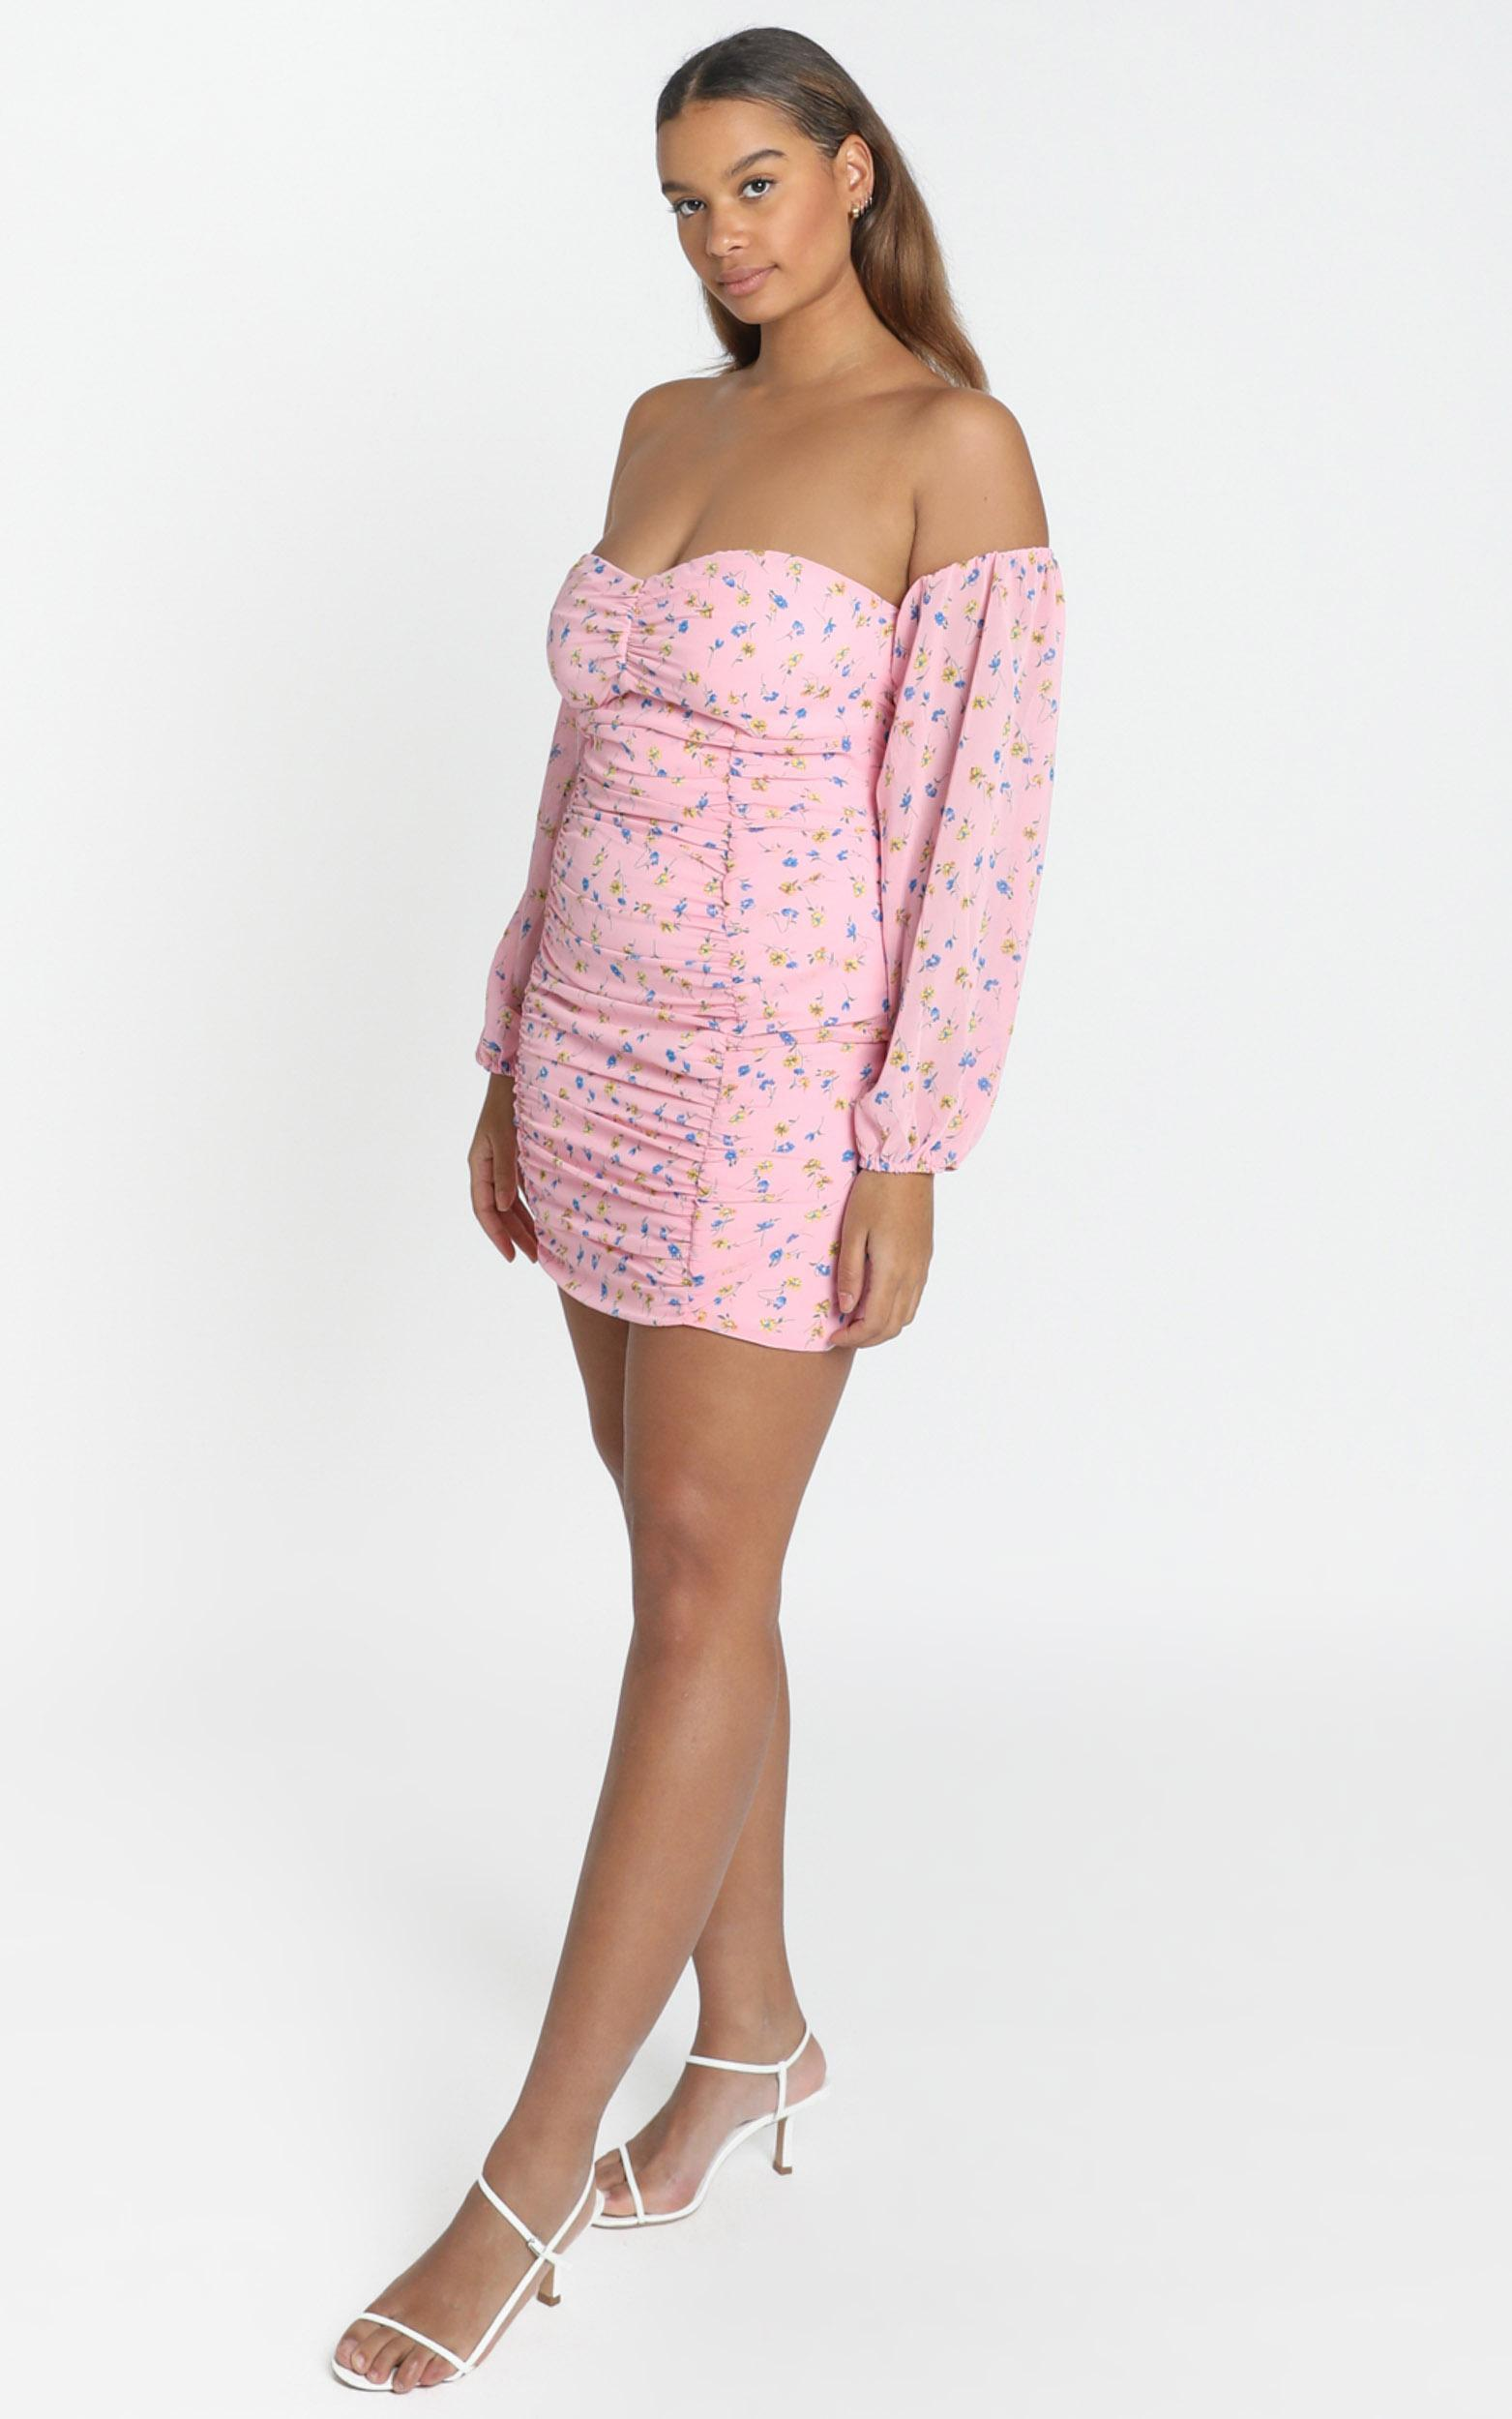 World Of Our Love Dress in pink floral - 4 (XXS), Pink, hi-res image number null